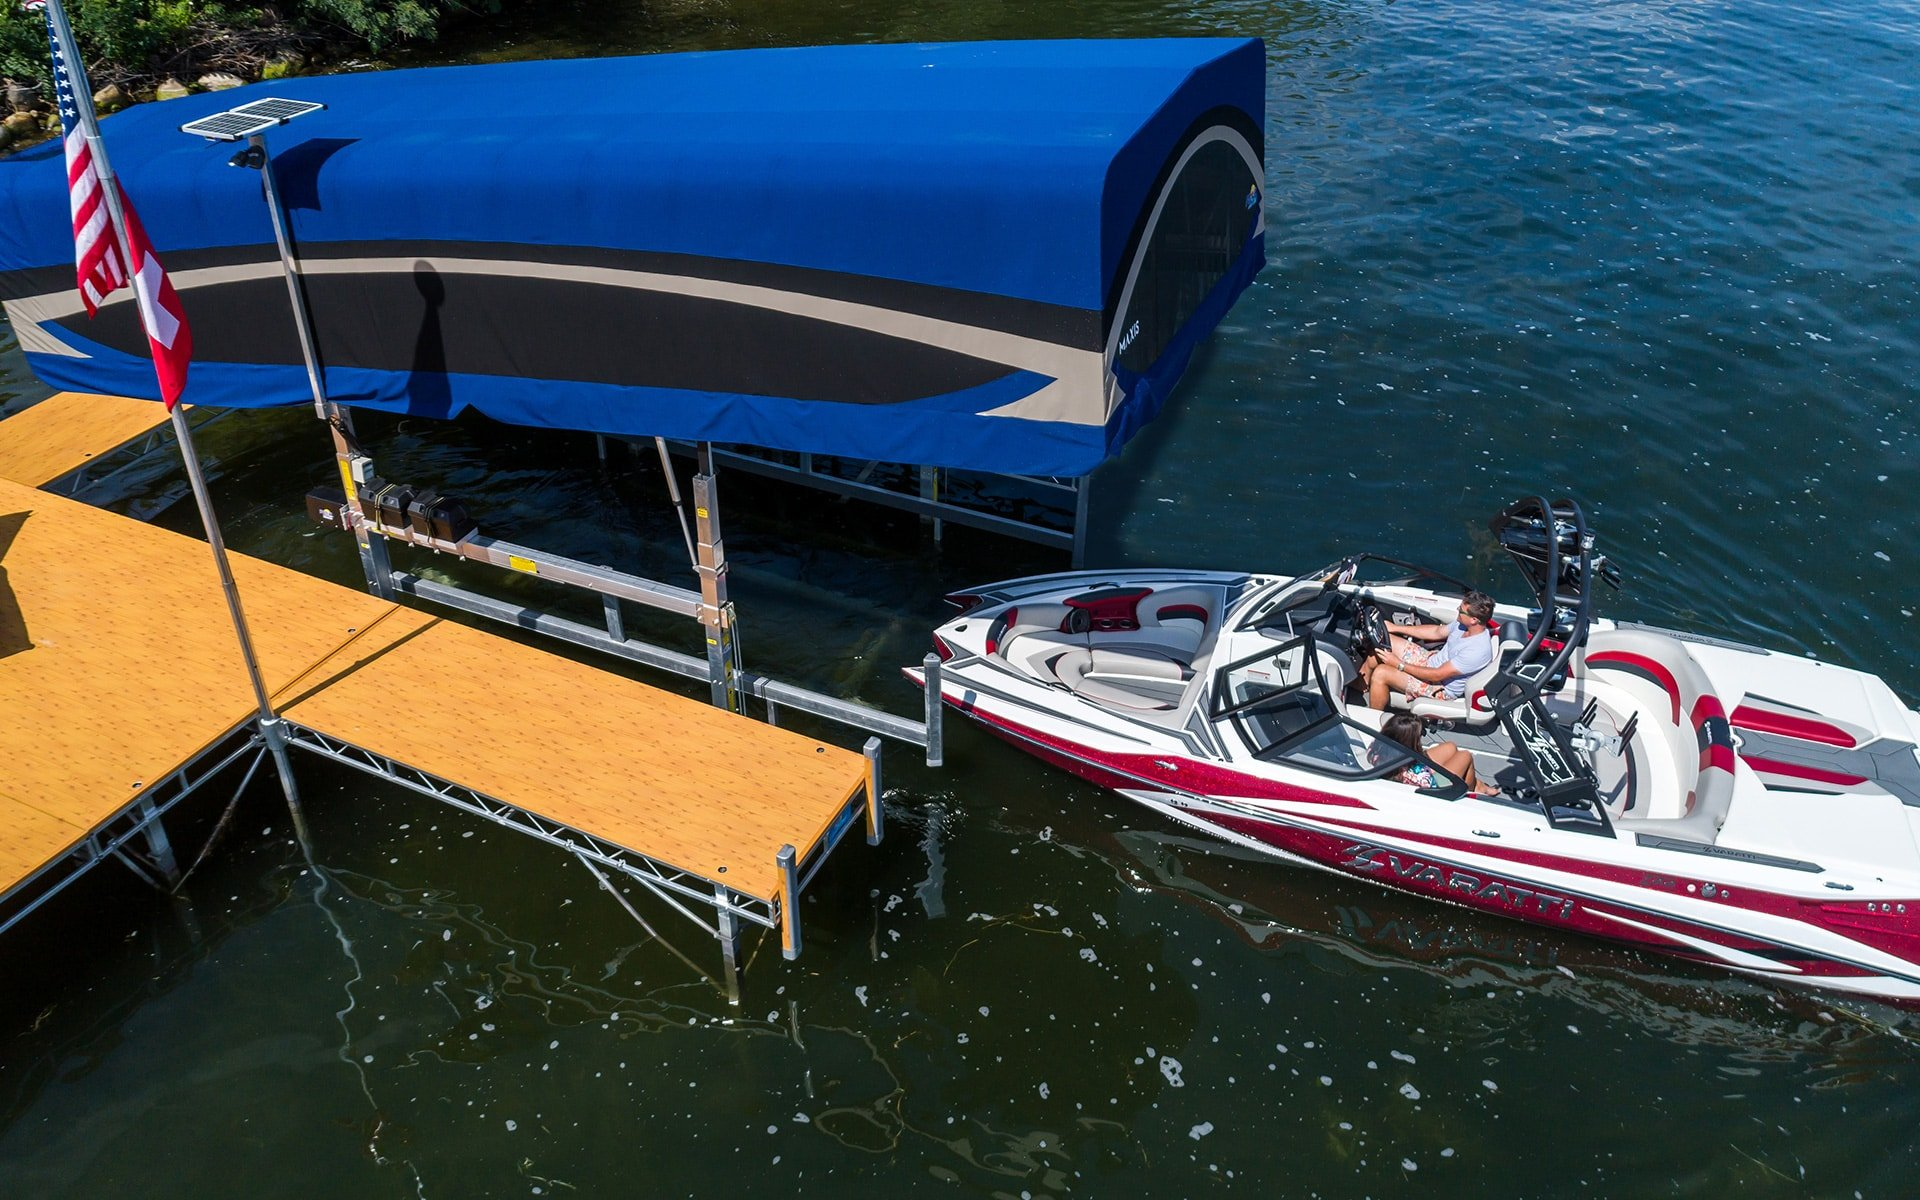 Floe Docks and Boat Lifts